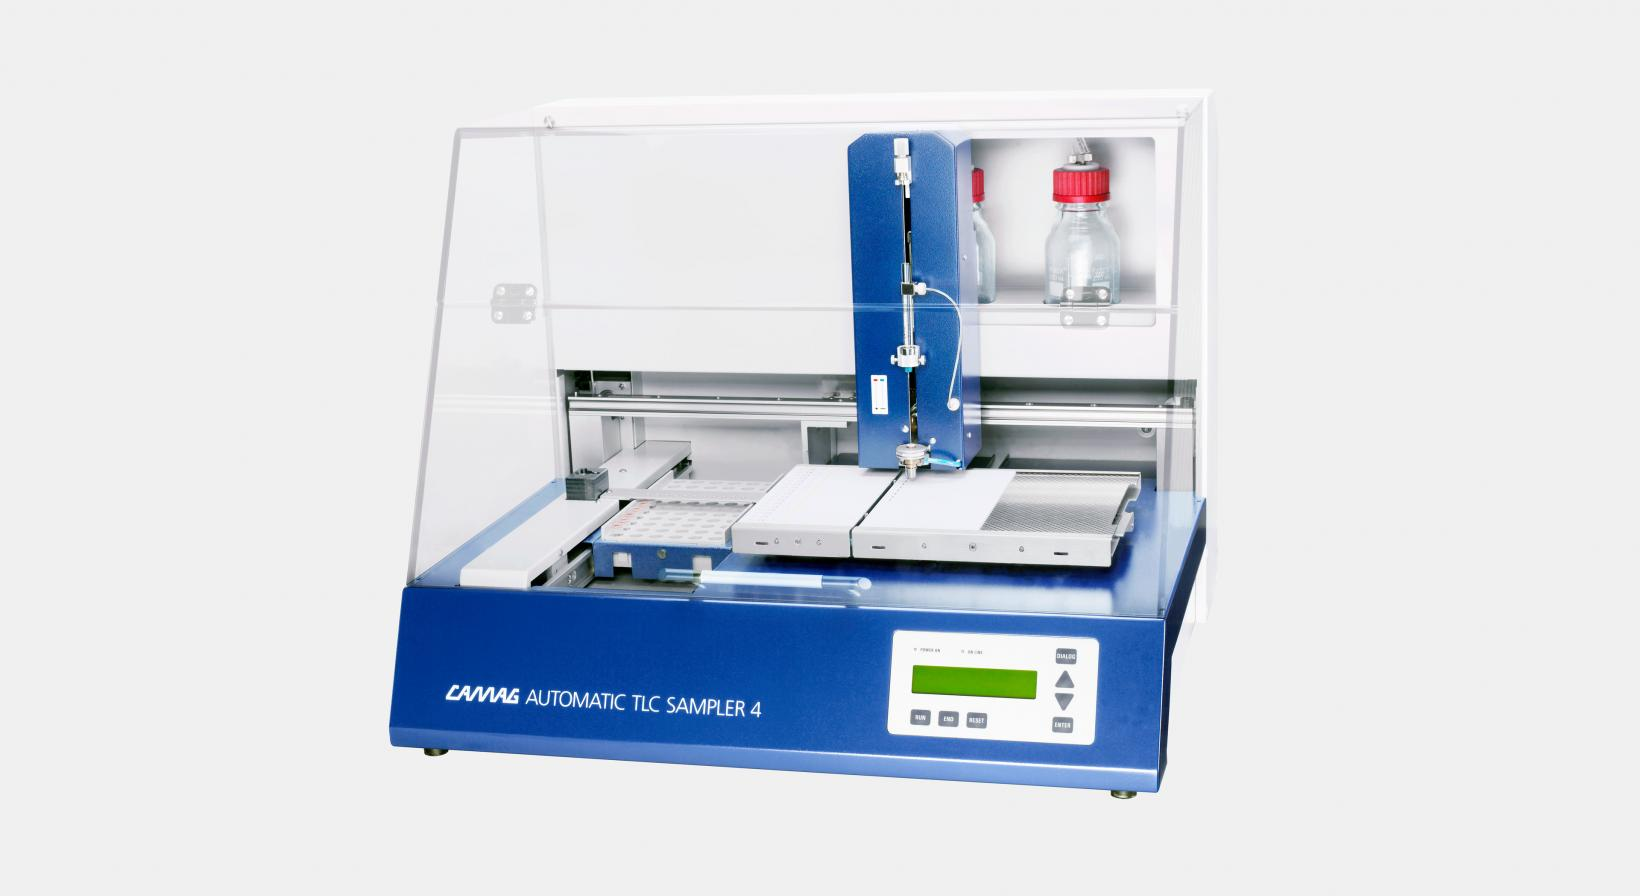 CAMAG® Automatic TLC Sampler 4 (ATS 4)